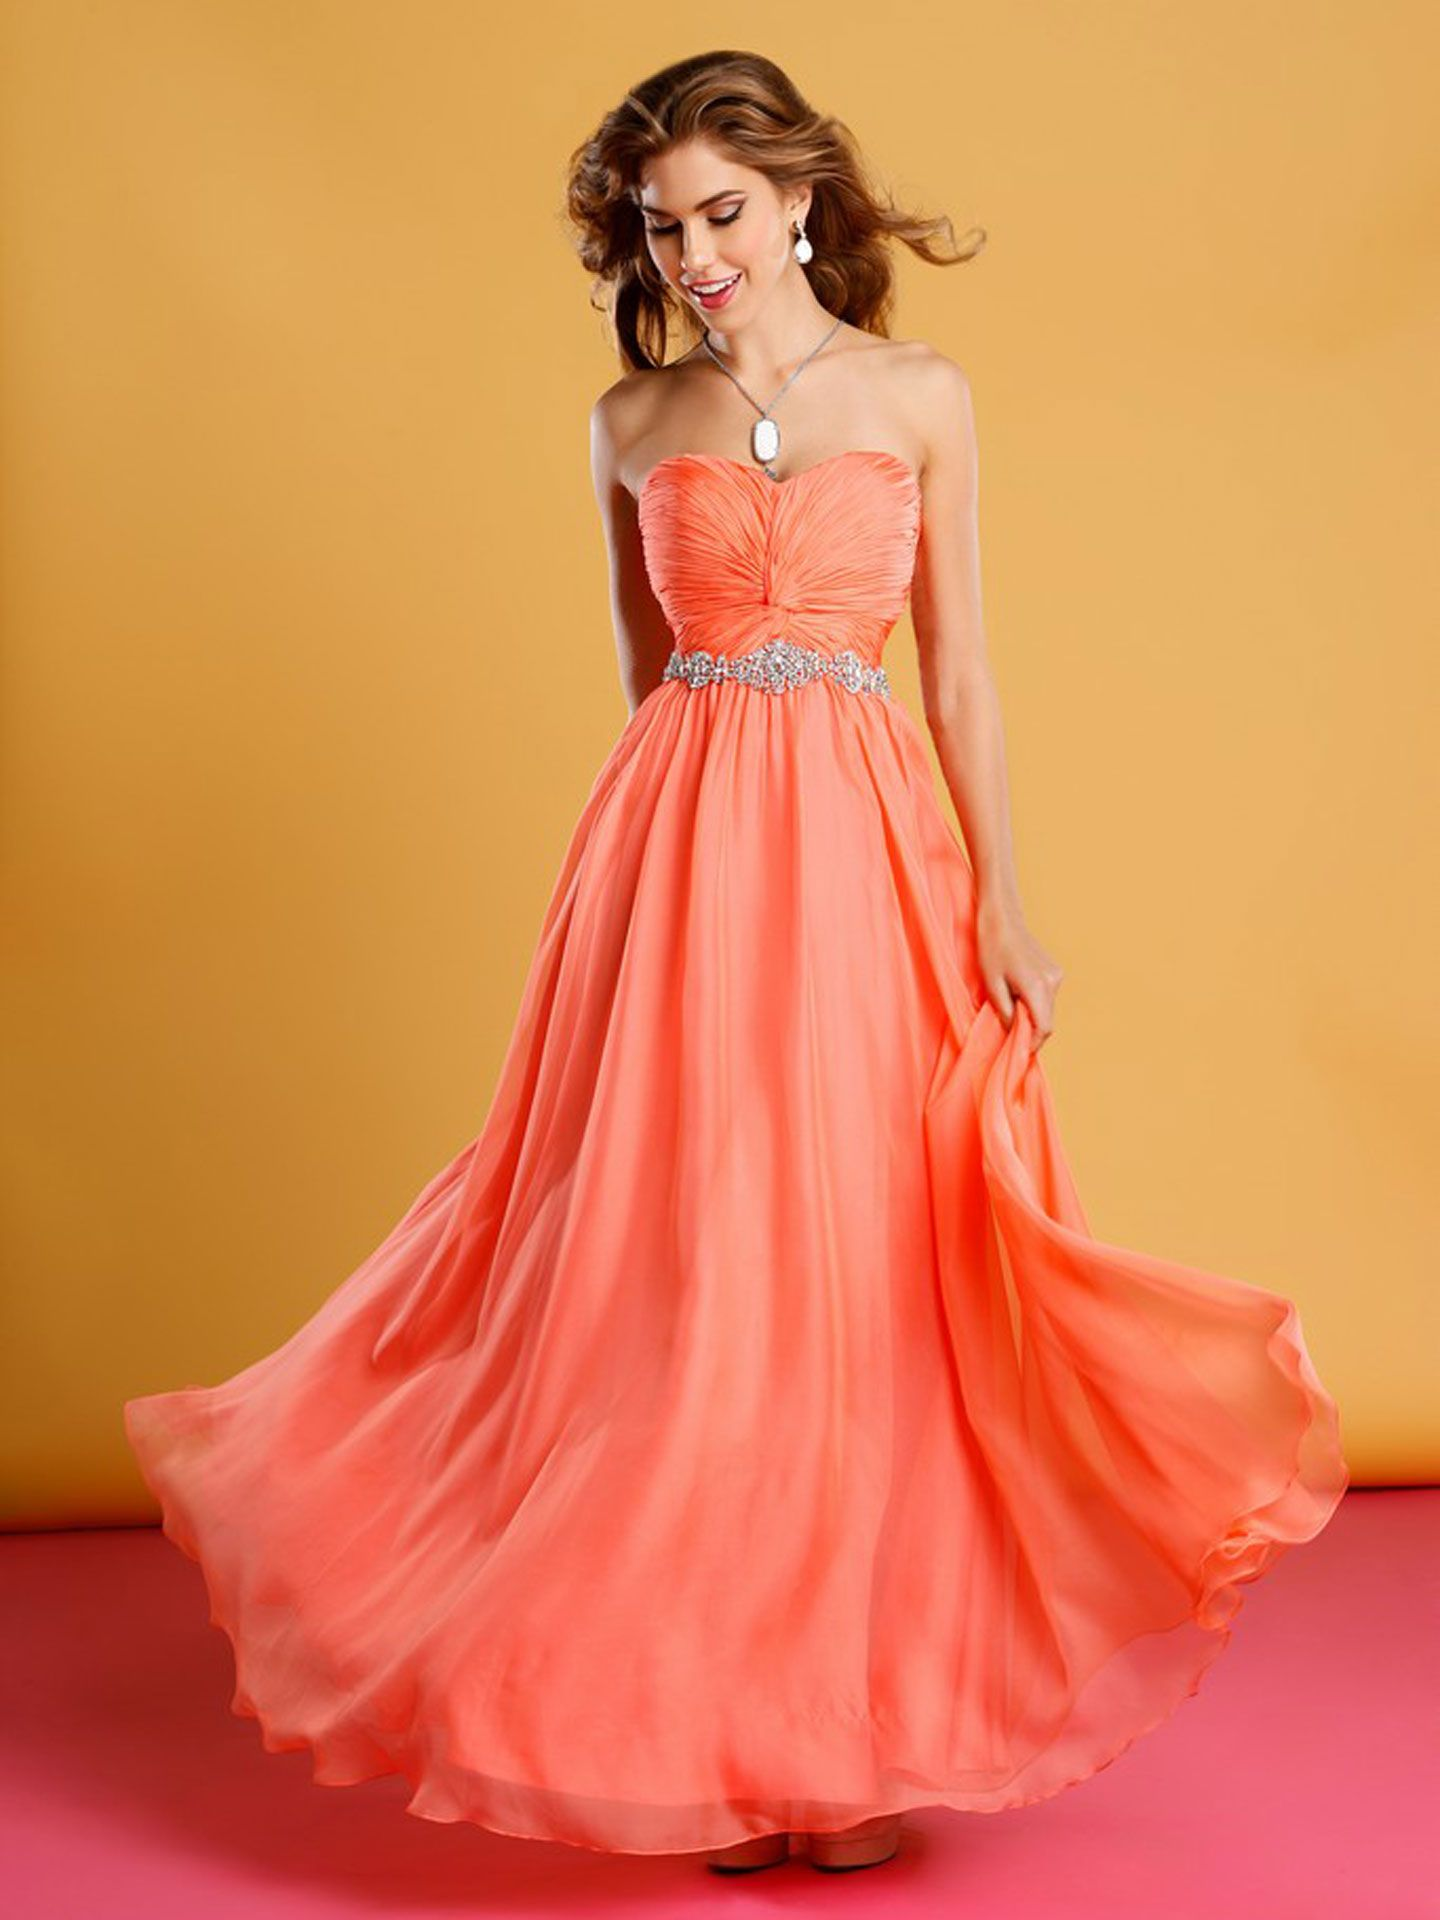 Yellow and Orange Prom Dresses! | Long prom dresses and Prom